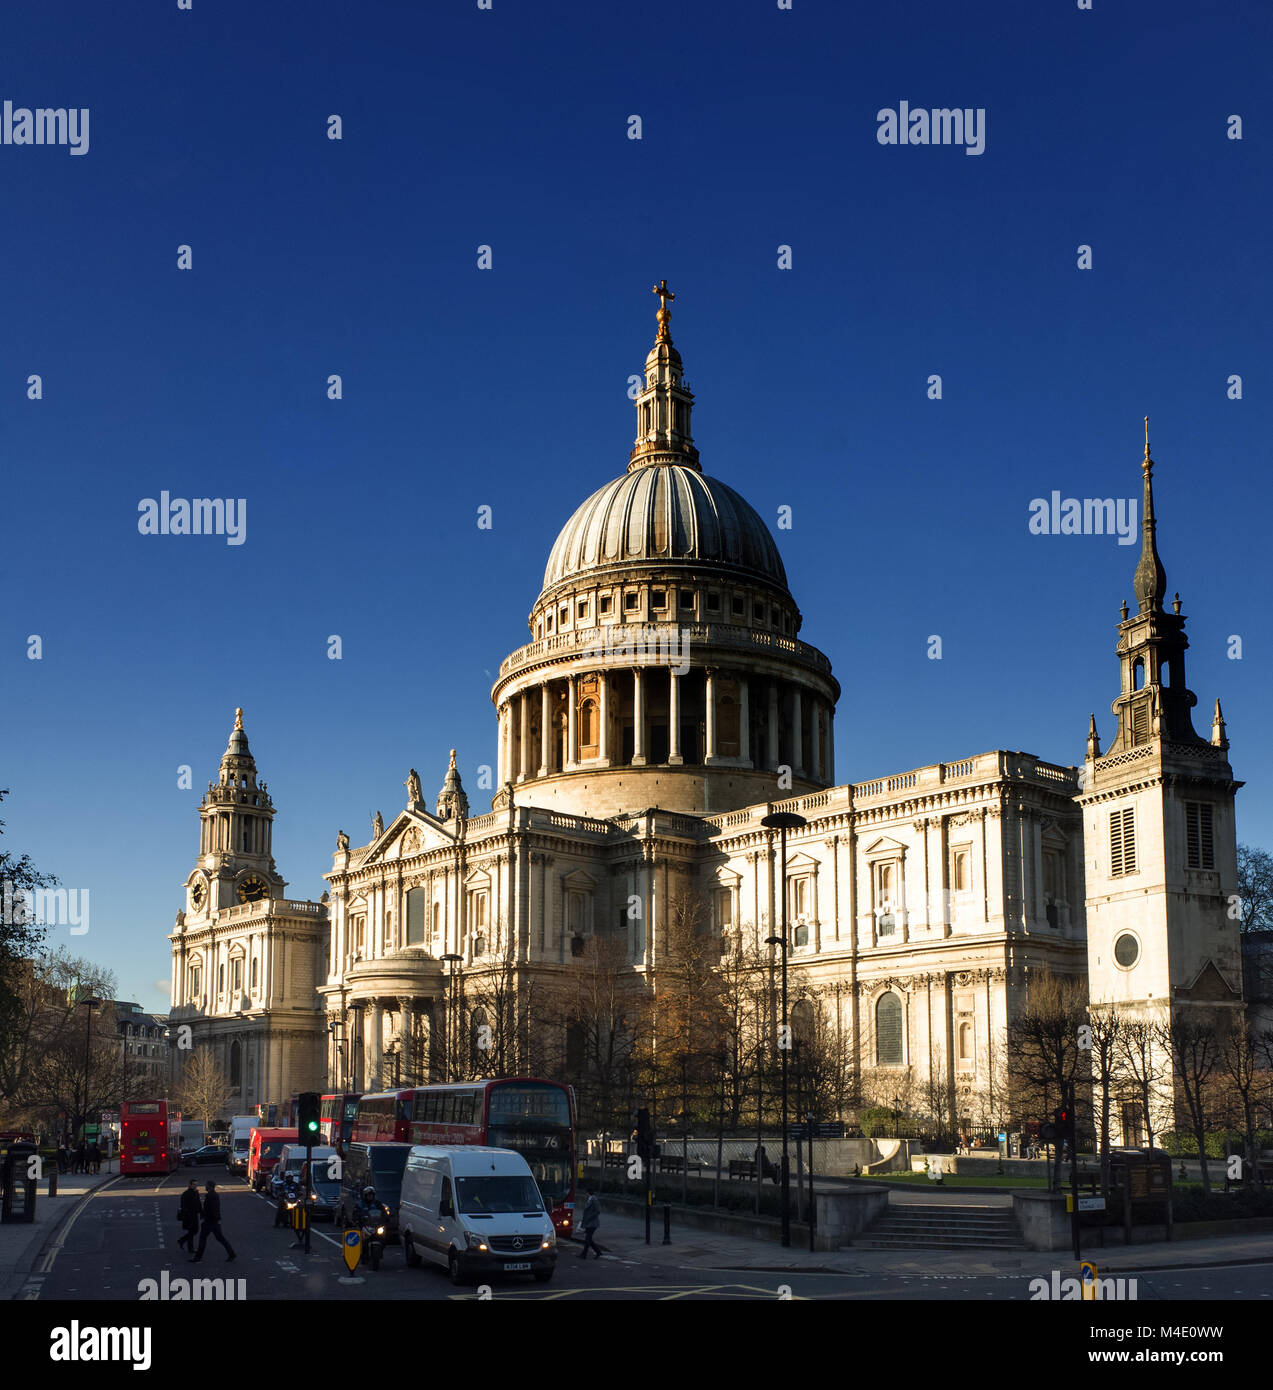 saint pauls christian personals Paul's influence on christian thought and practice has been  in the history of the contending of saint paul his countenance is actually described as.